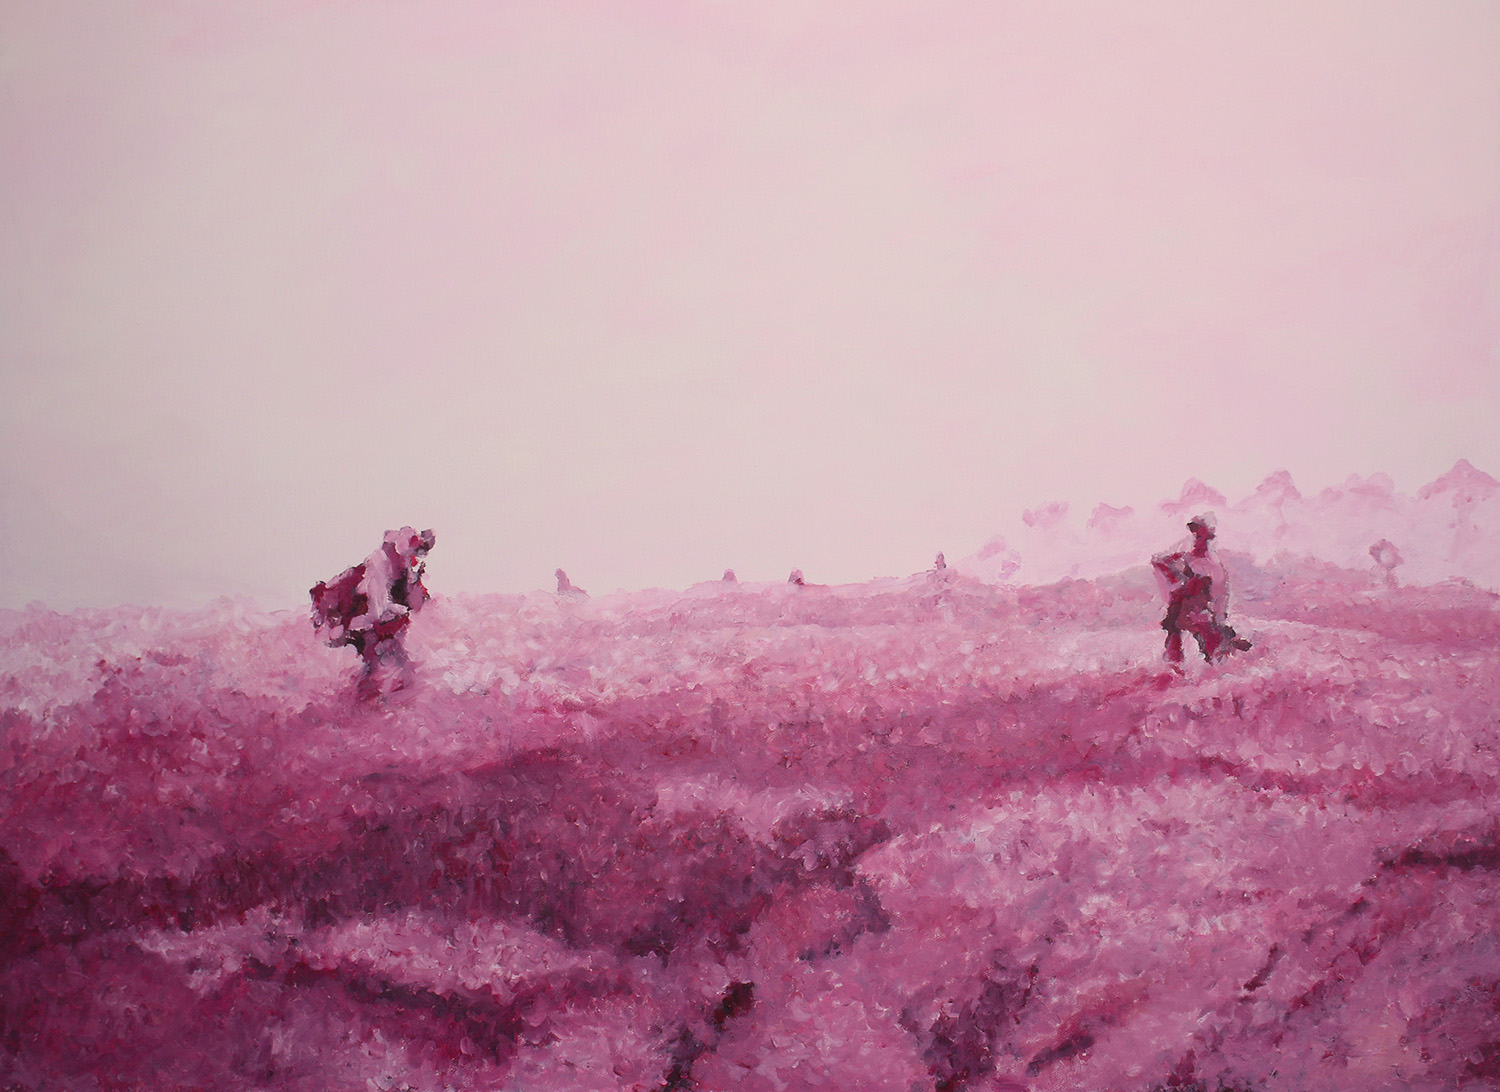 Raspberry fields, 2017, Öl auf Leinwand, 90 x 120 cm, sold